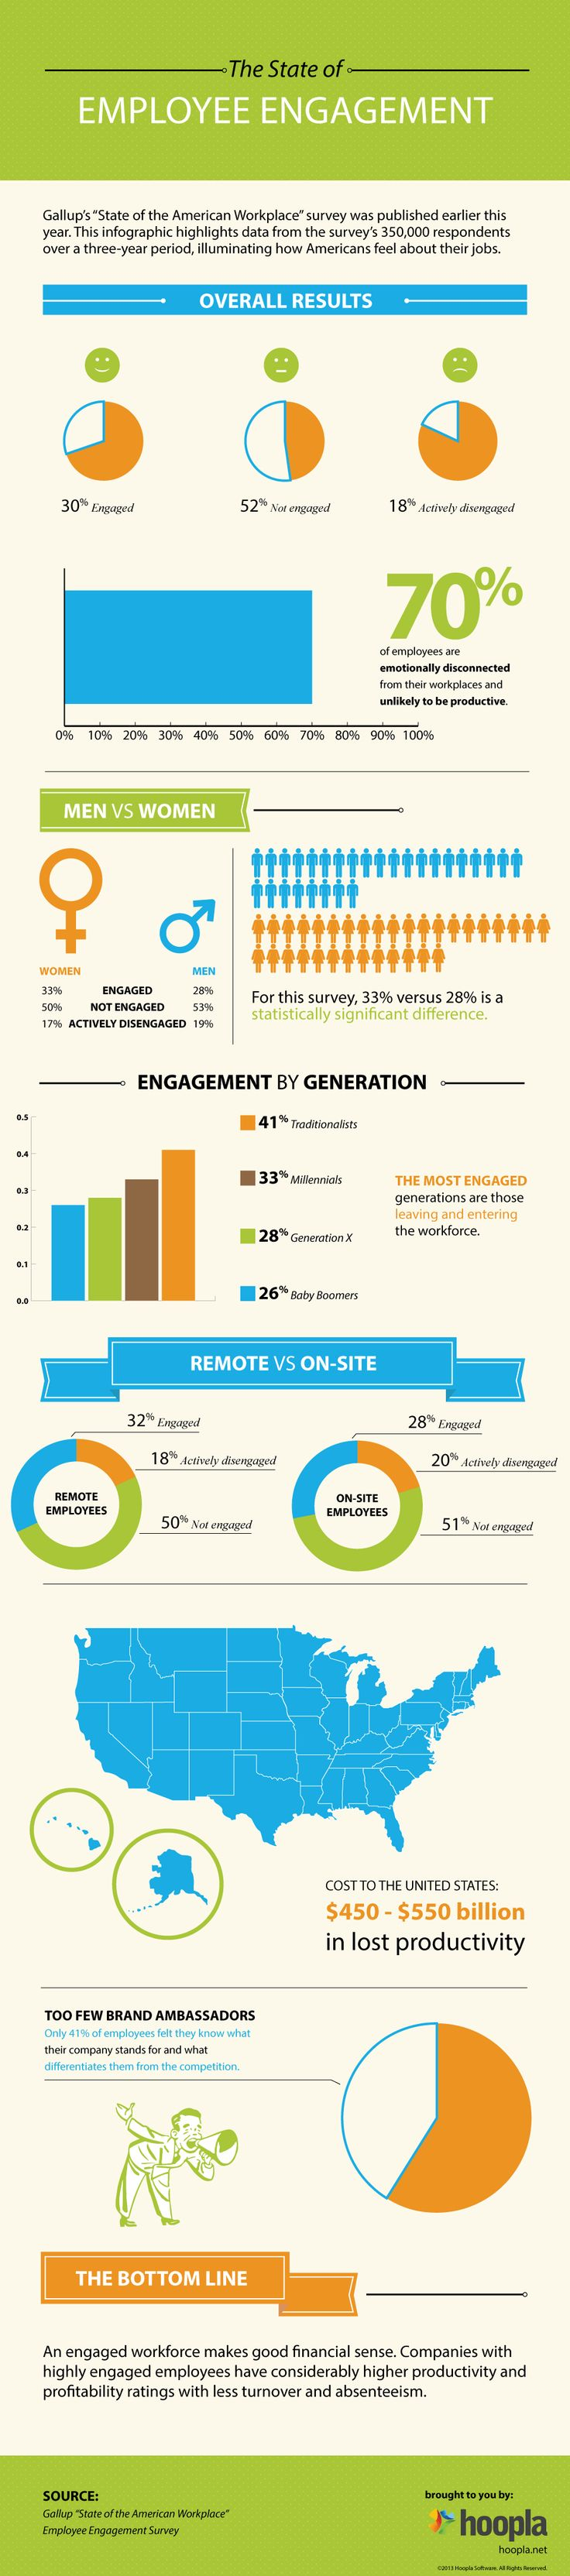 engagement surveys for the workplace best 25 employee engagement ideas on pinterest human 9718